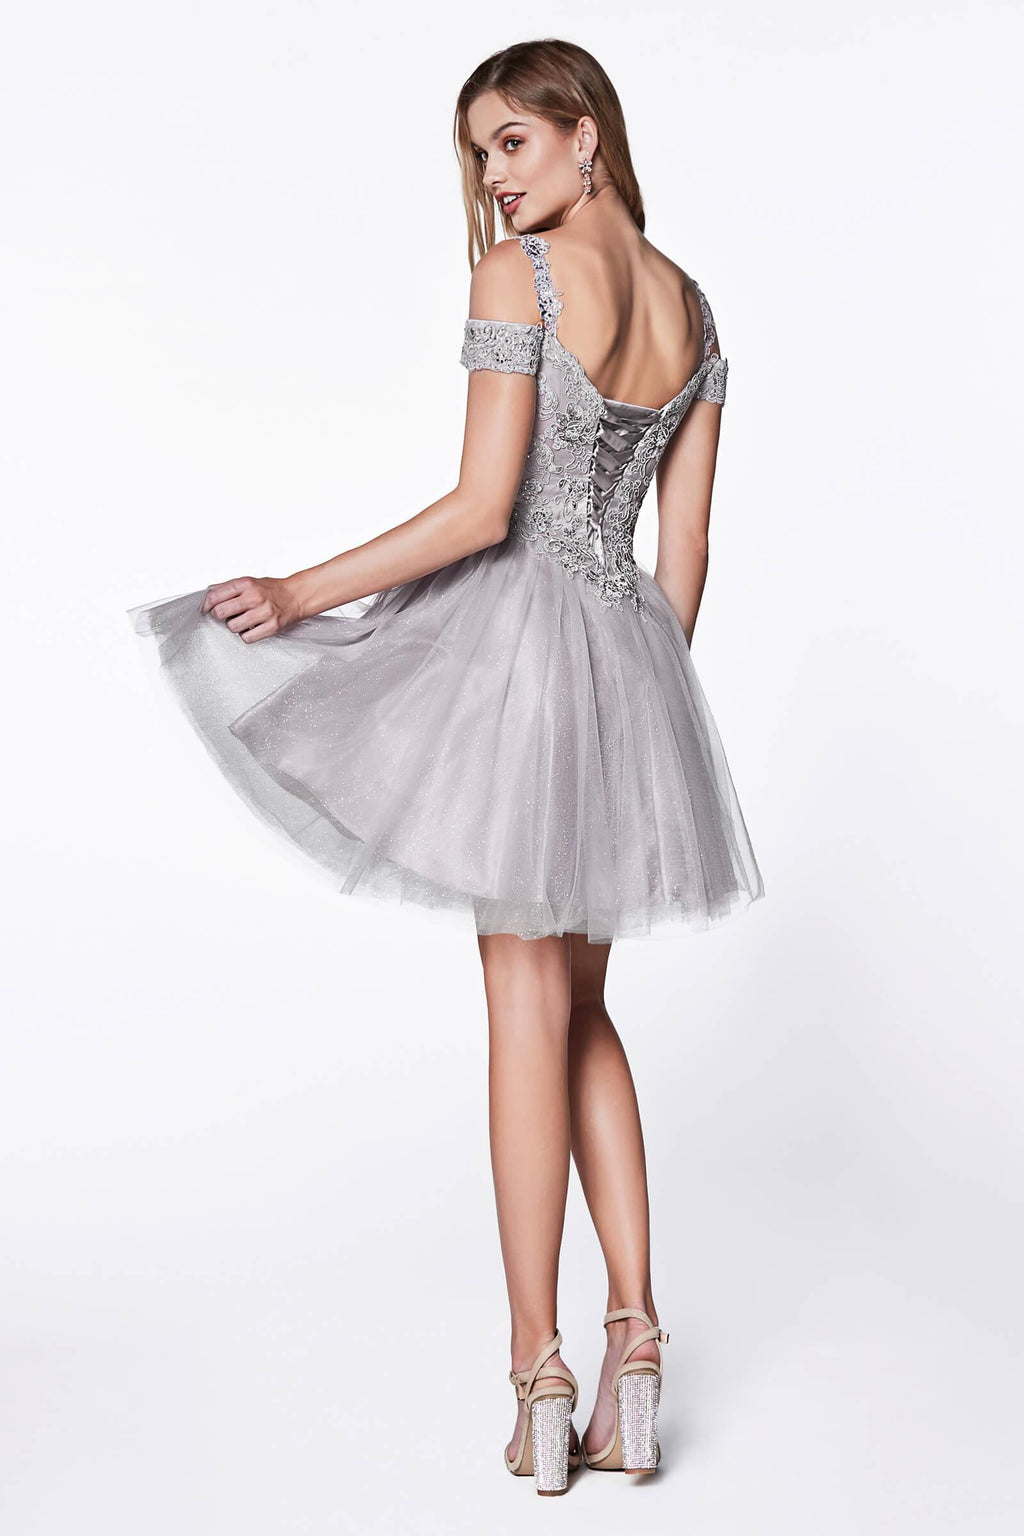 Short Prom Formal Homecoming Dress - The Dress Outlet Silver Cinderella Divine